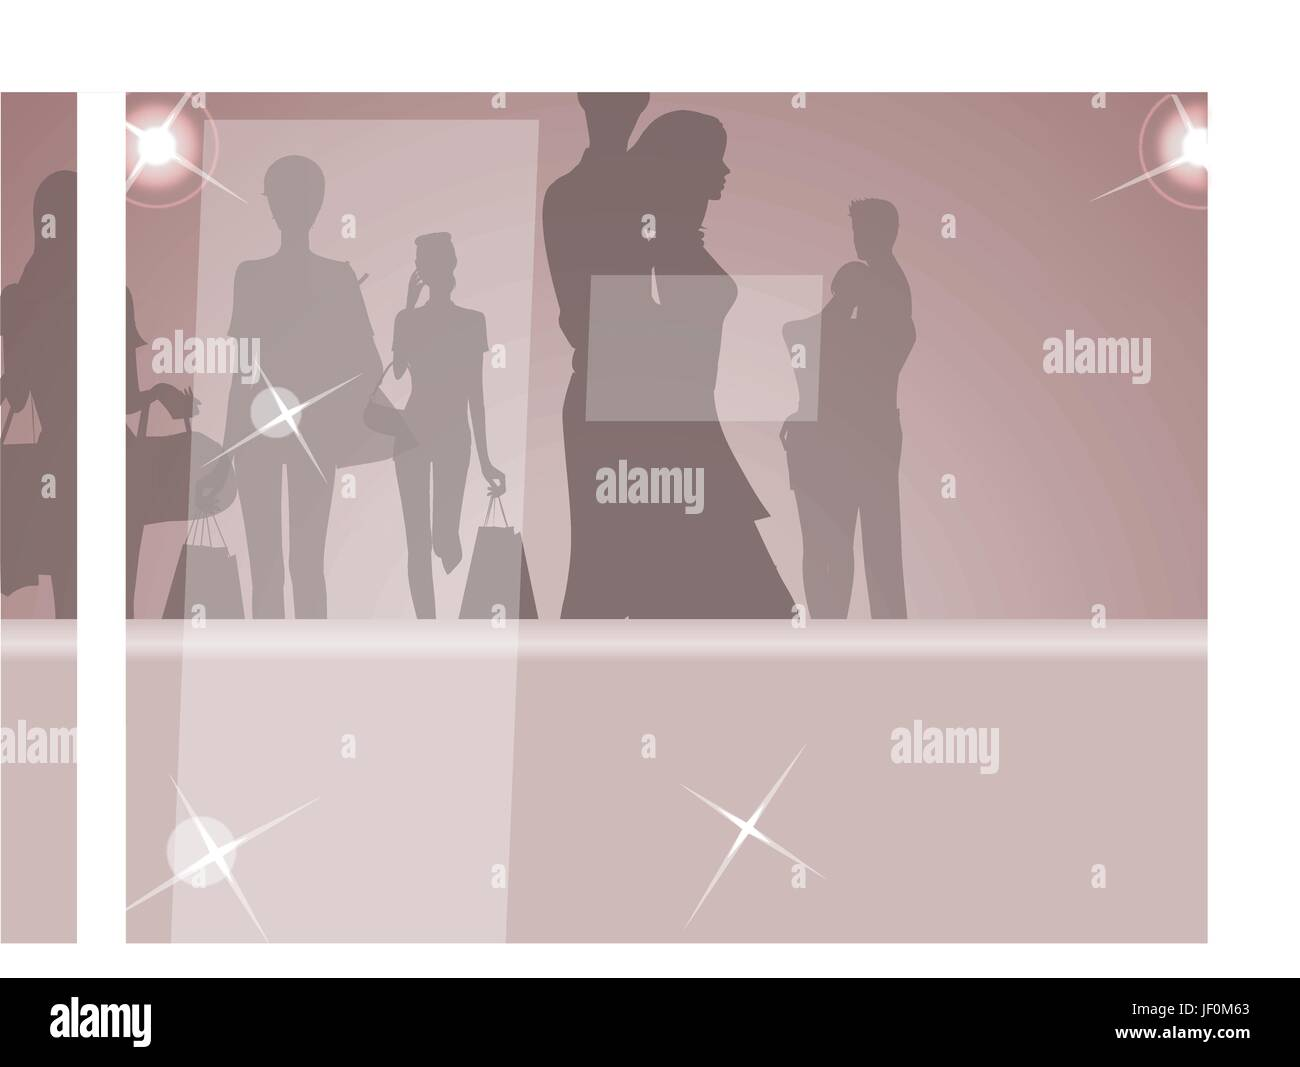 humans, human beings, people, folk, persons, human, human being, woman, women, - Stock Vector